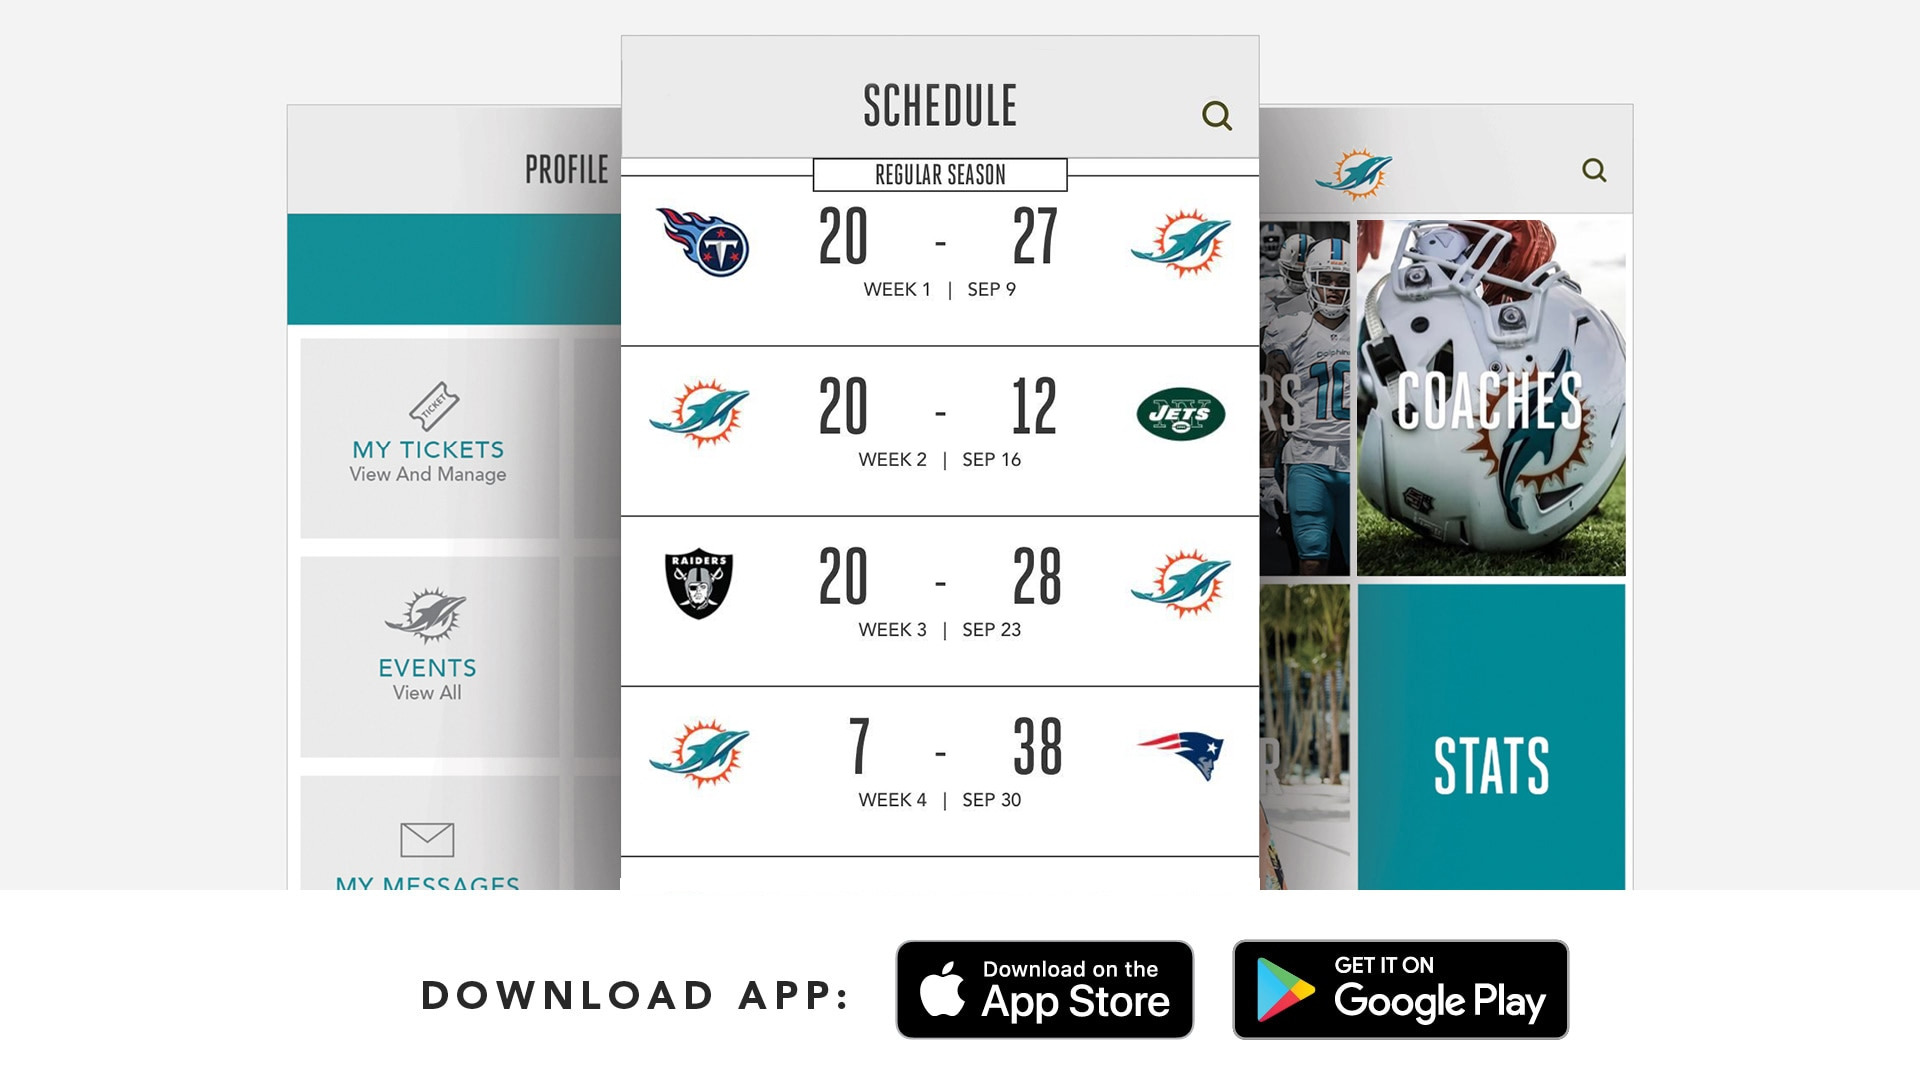 Dolphins Home | Miami Dolphins - dolphins com